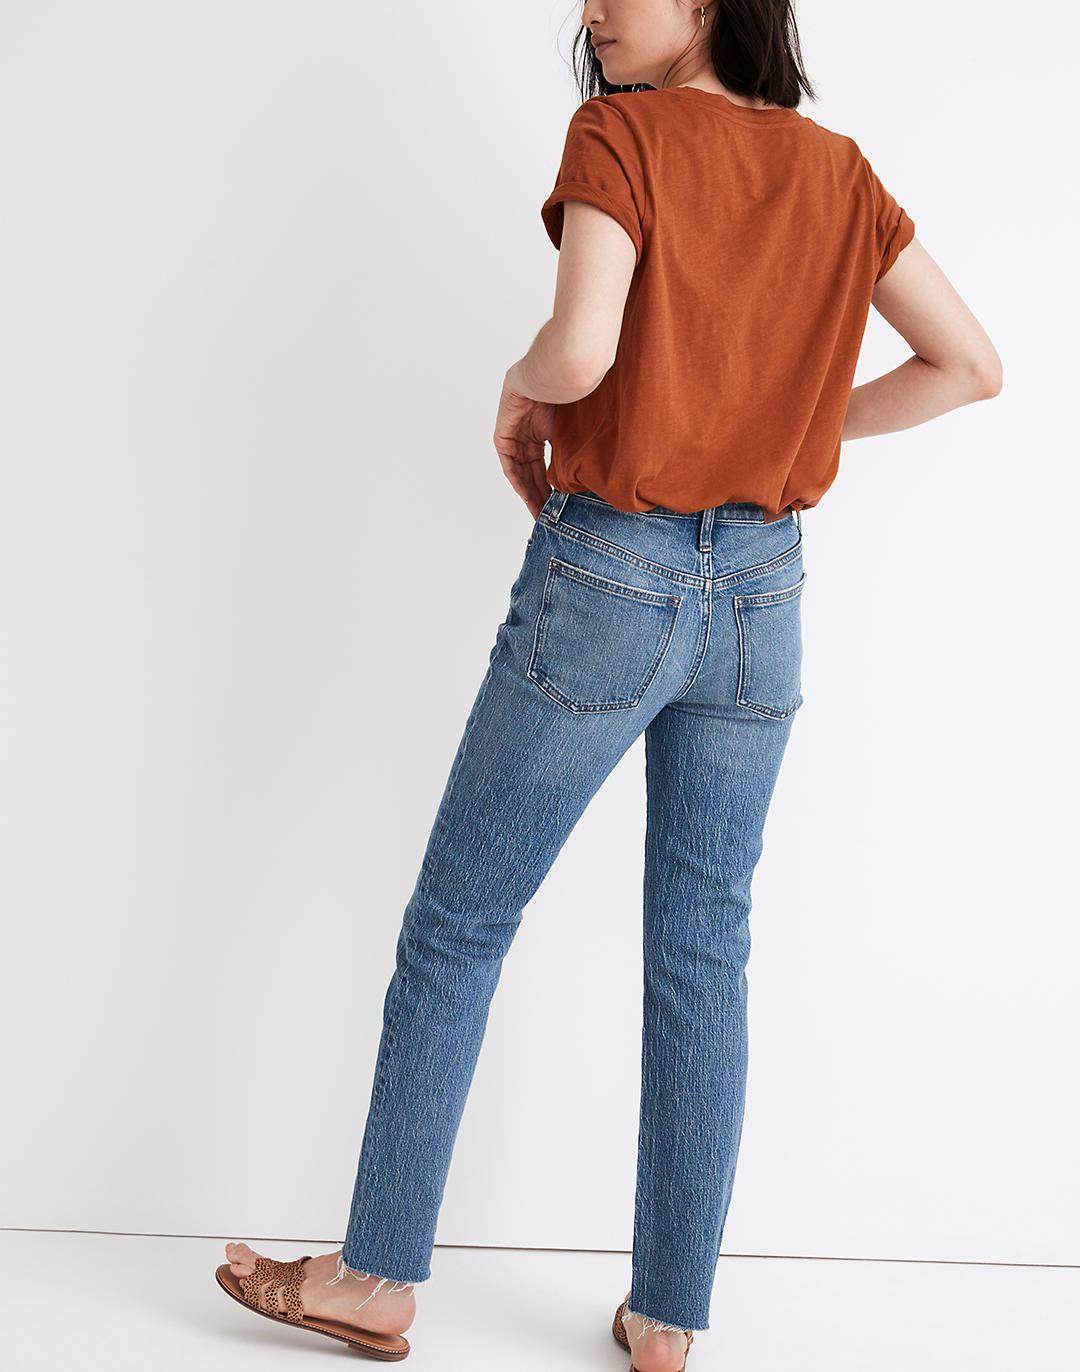 The Mid-Rise Perfect Vintage Jean in Enmore Wash 2